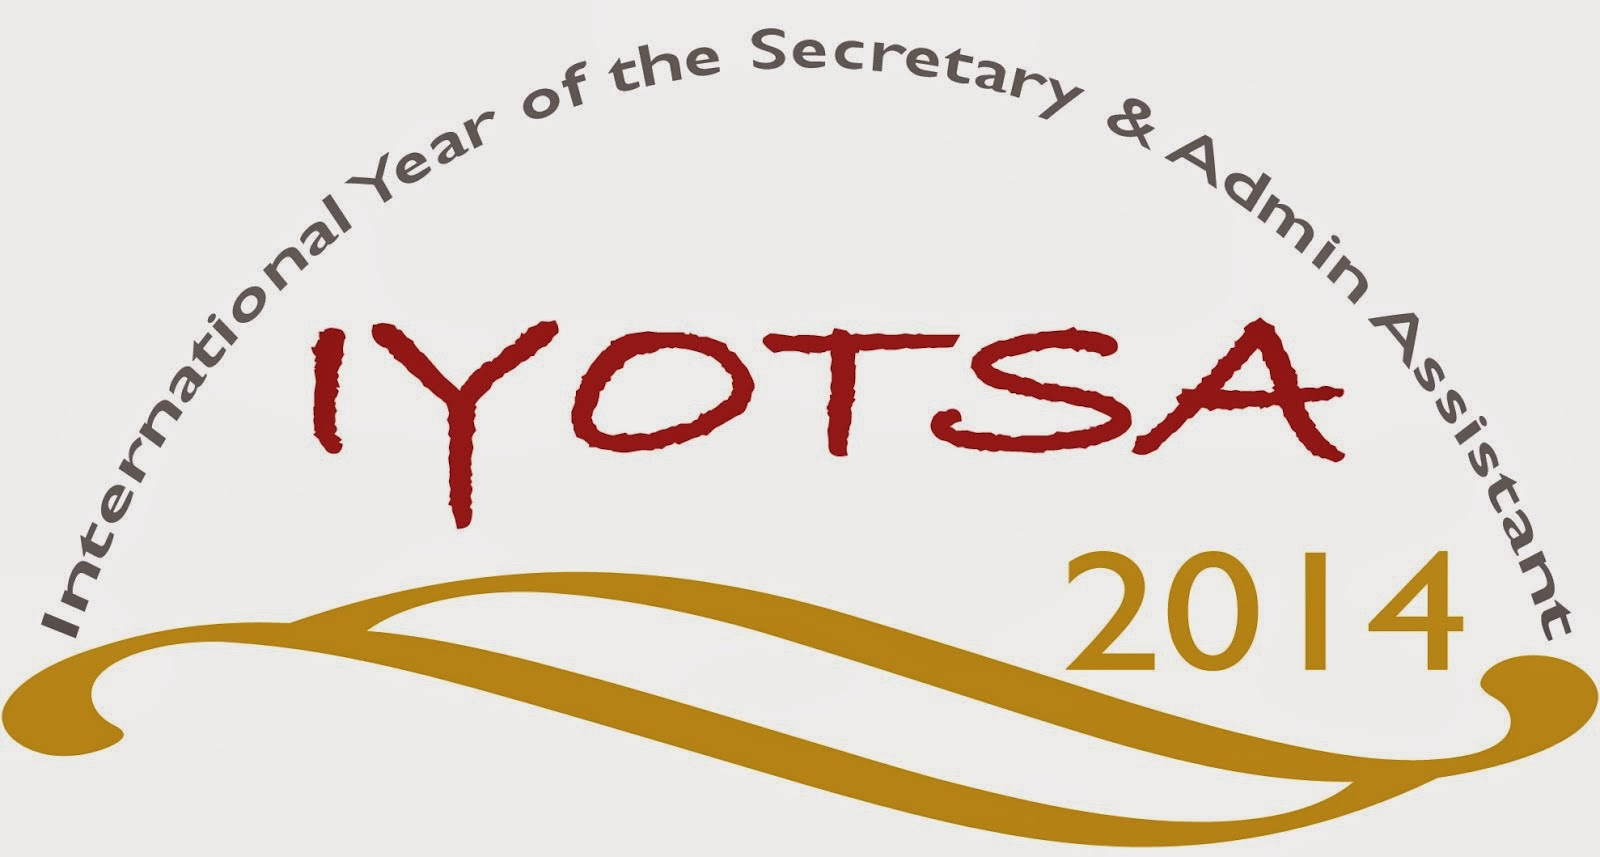 2014: International Year of the Secretary and Assistant - SEiEM, Embajadora por España